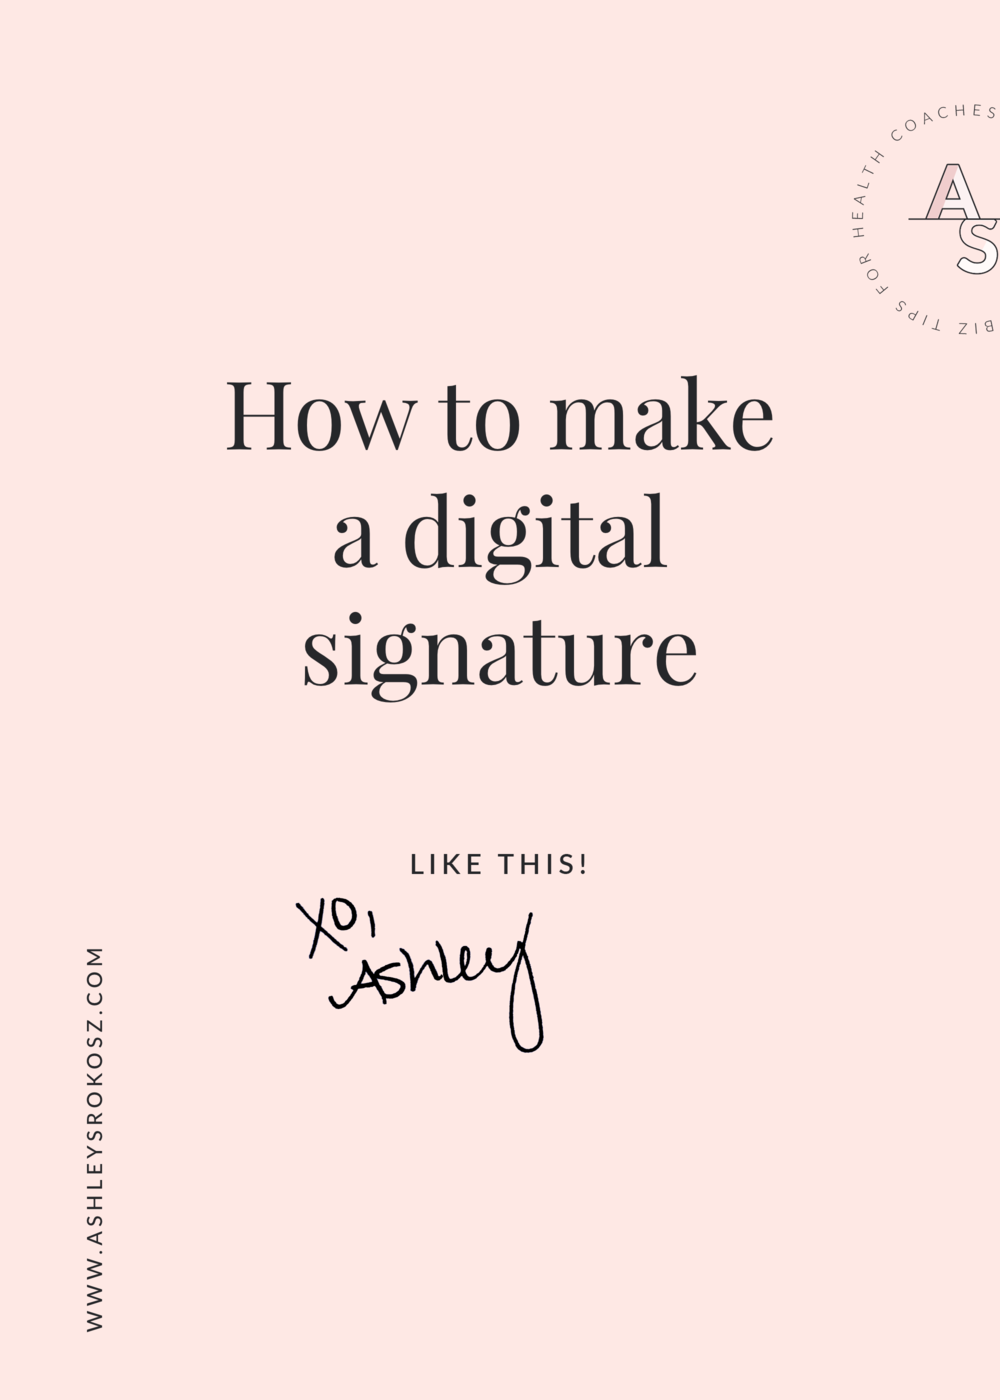 Have you wondered how to make a digital signature like what you see on websites and at the bottom of email newsletters?Click here to see the step-by-step video tutorial showing you how to make a digital signature in less than 5 minutes!This is perfect for holistic nutritionists, health coaches, essential oil business owners, or yoga teachers.